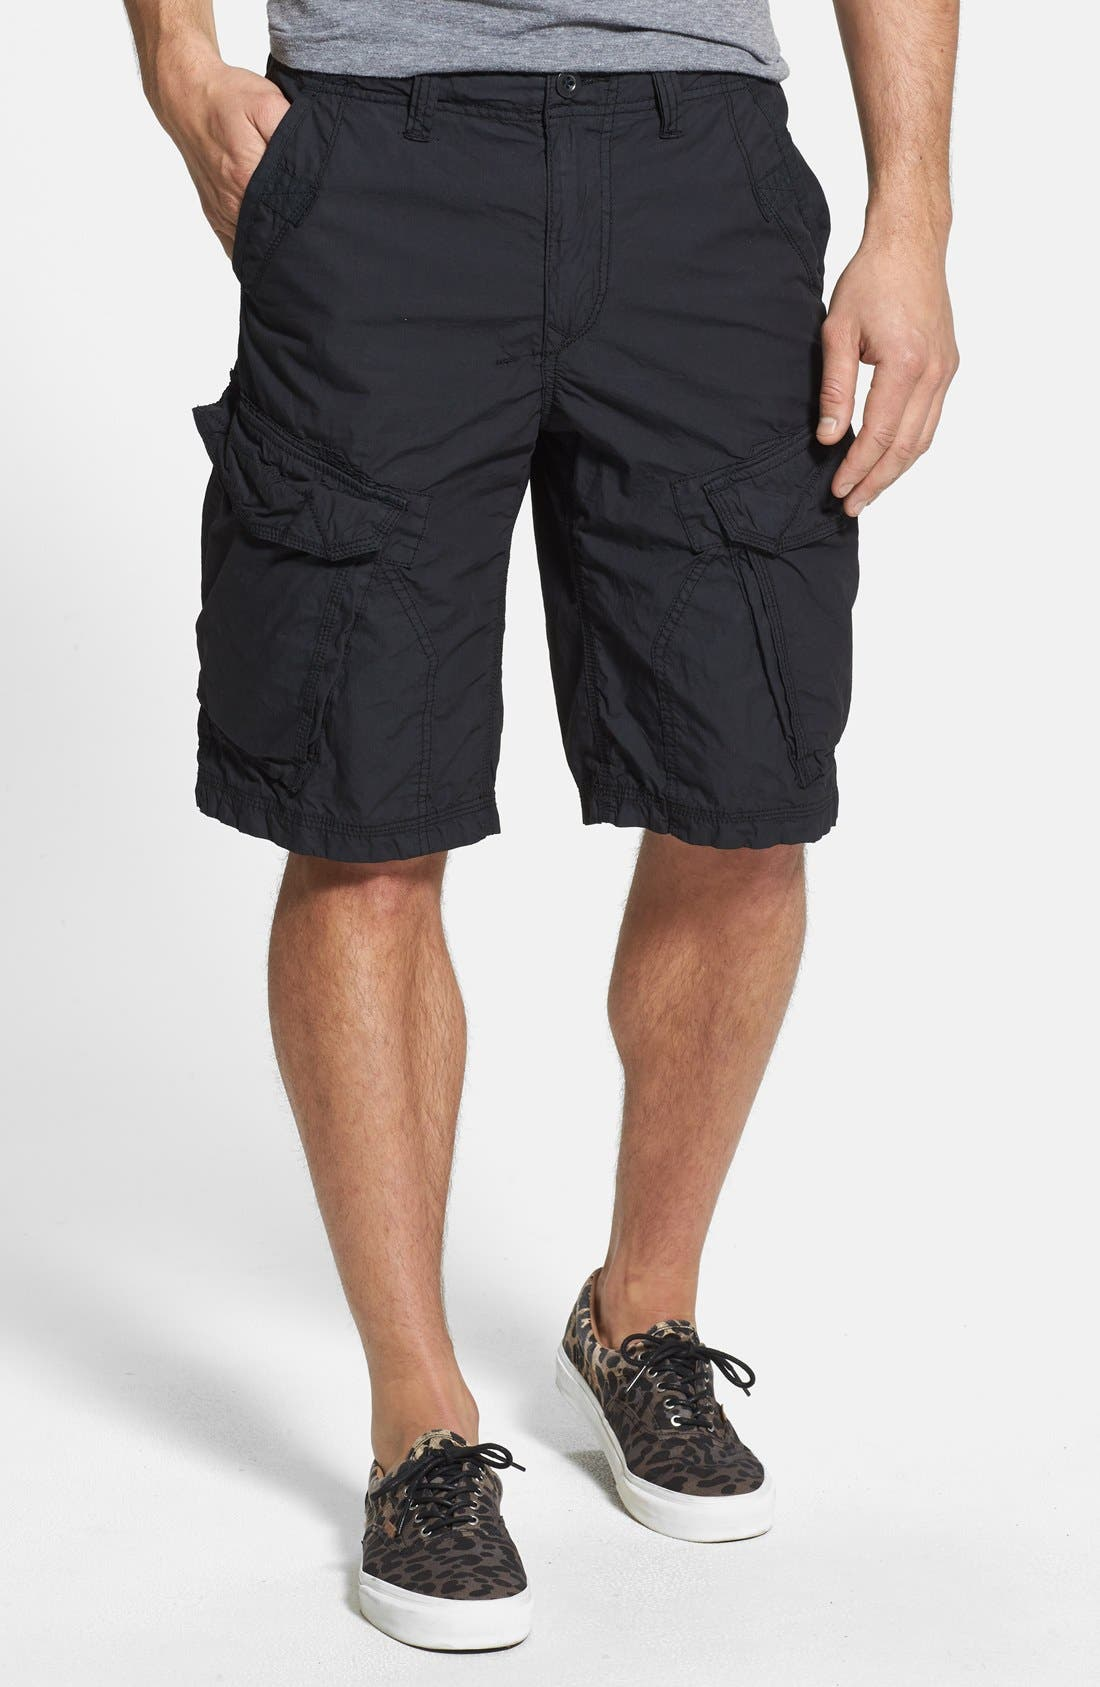 Main Image - Union 'New Duke' Cargo Shorts